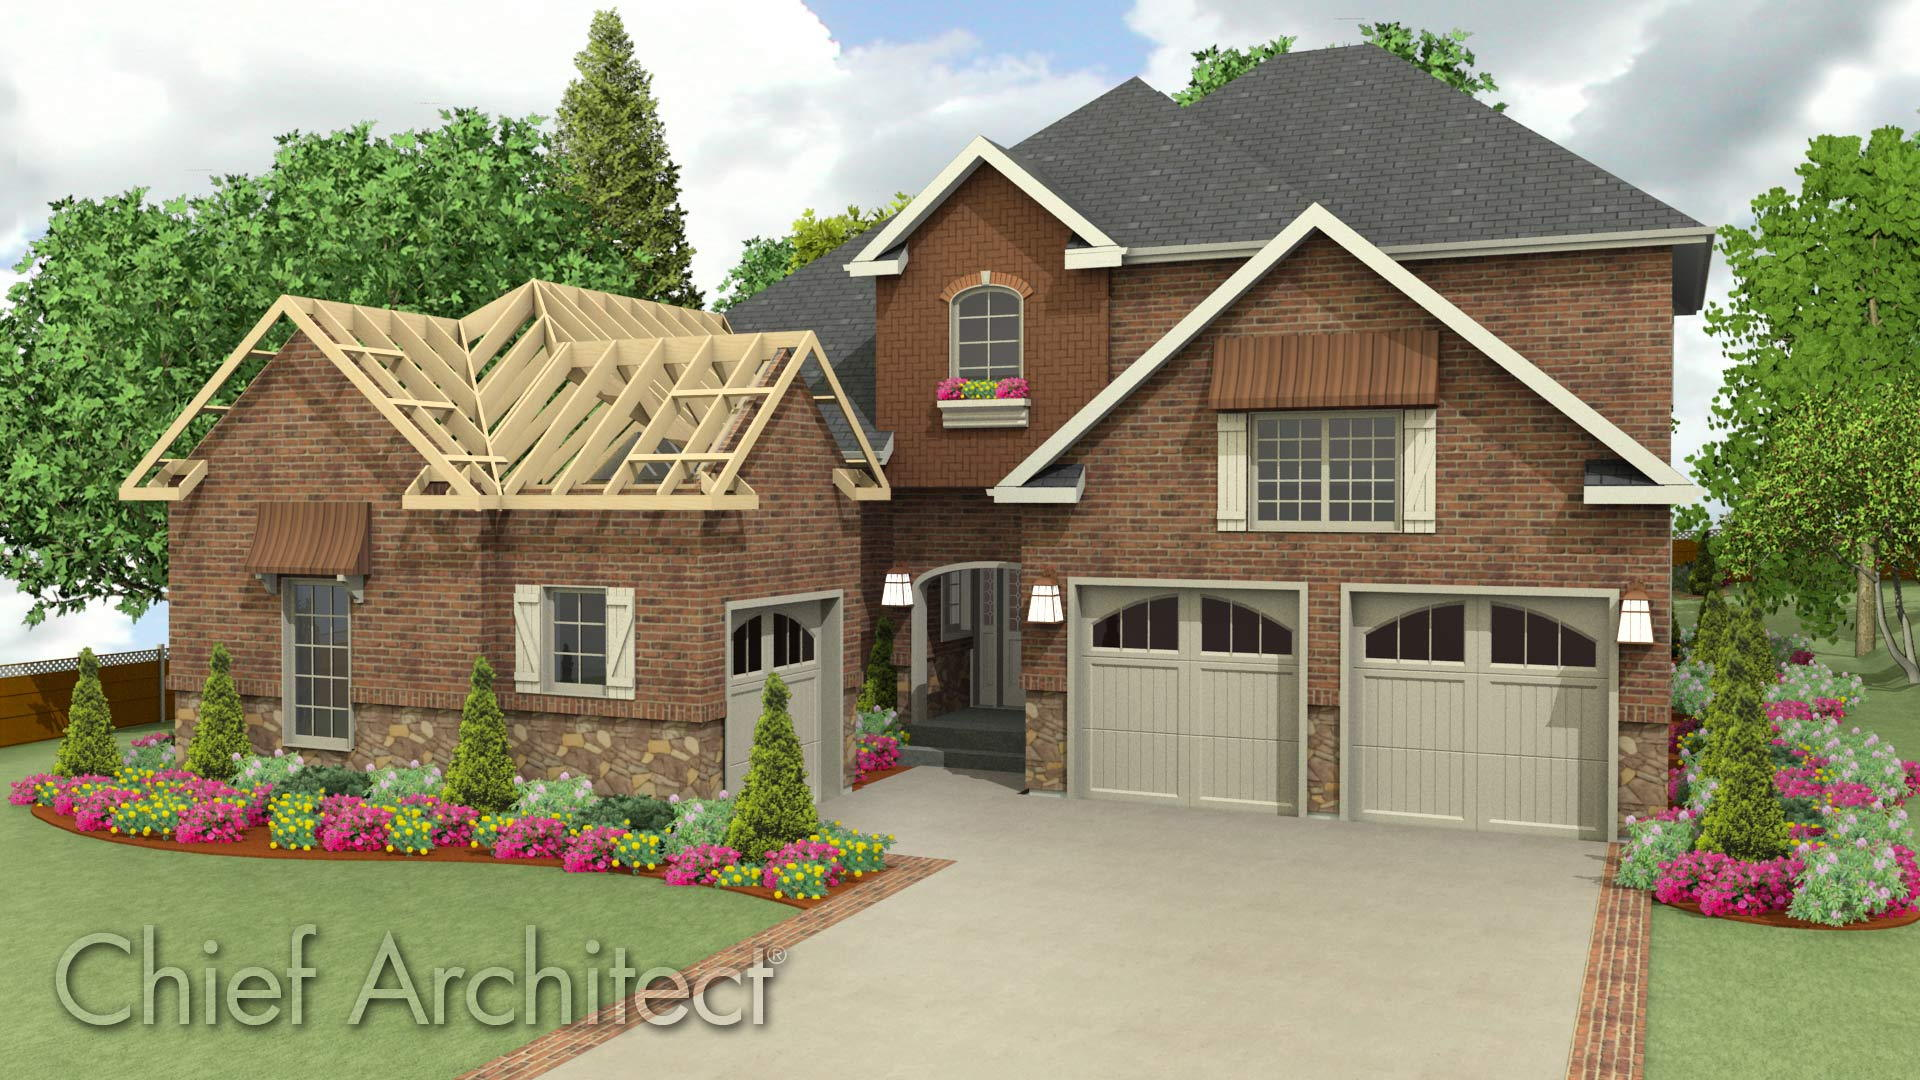 Chief Architect Home Design - Samples Gallery on landscape designs for victorian homes, interior design for split level homes, landscape designs for log homes, kitchens for split level homes, decks for split level homes, landscape designs for ranch style homes,